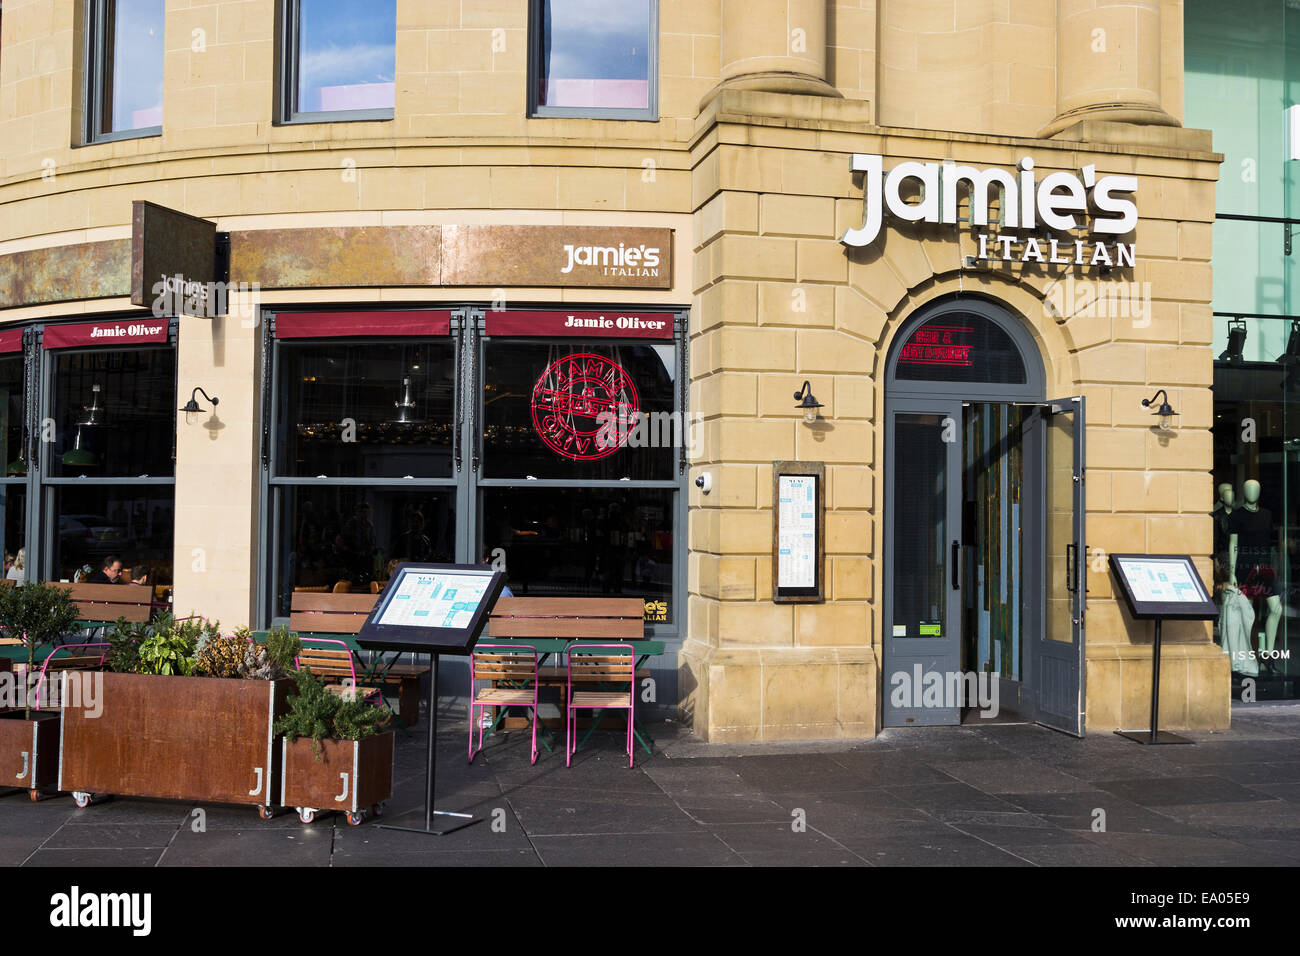 Jamie oliver italian restaurant at newcastle upon tyne showing exterior with diners inside and menu boards